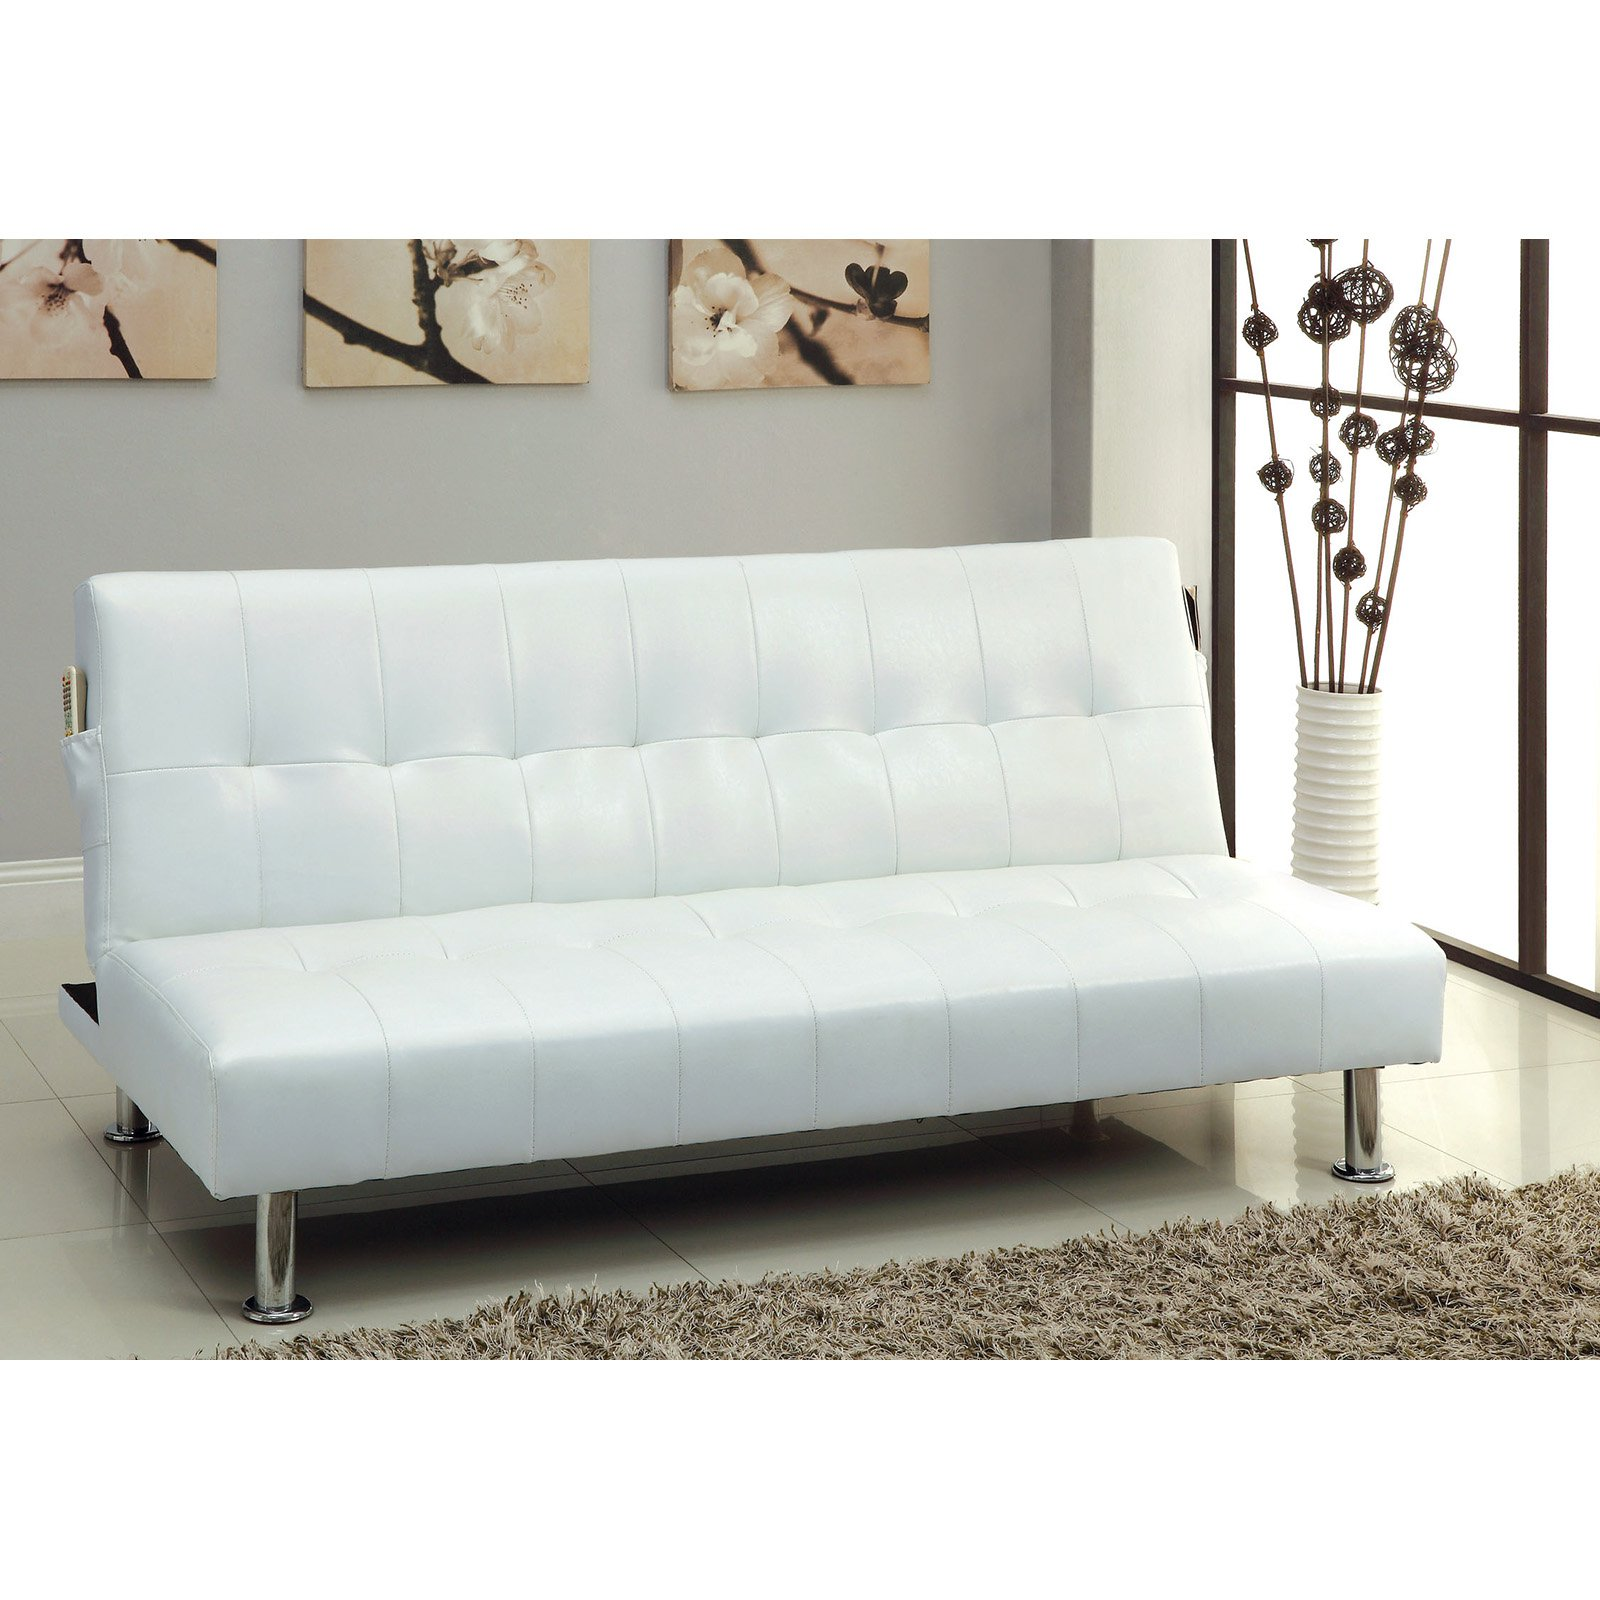 Furniture of America Fabric Convertible Futon with Side Pockets